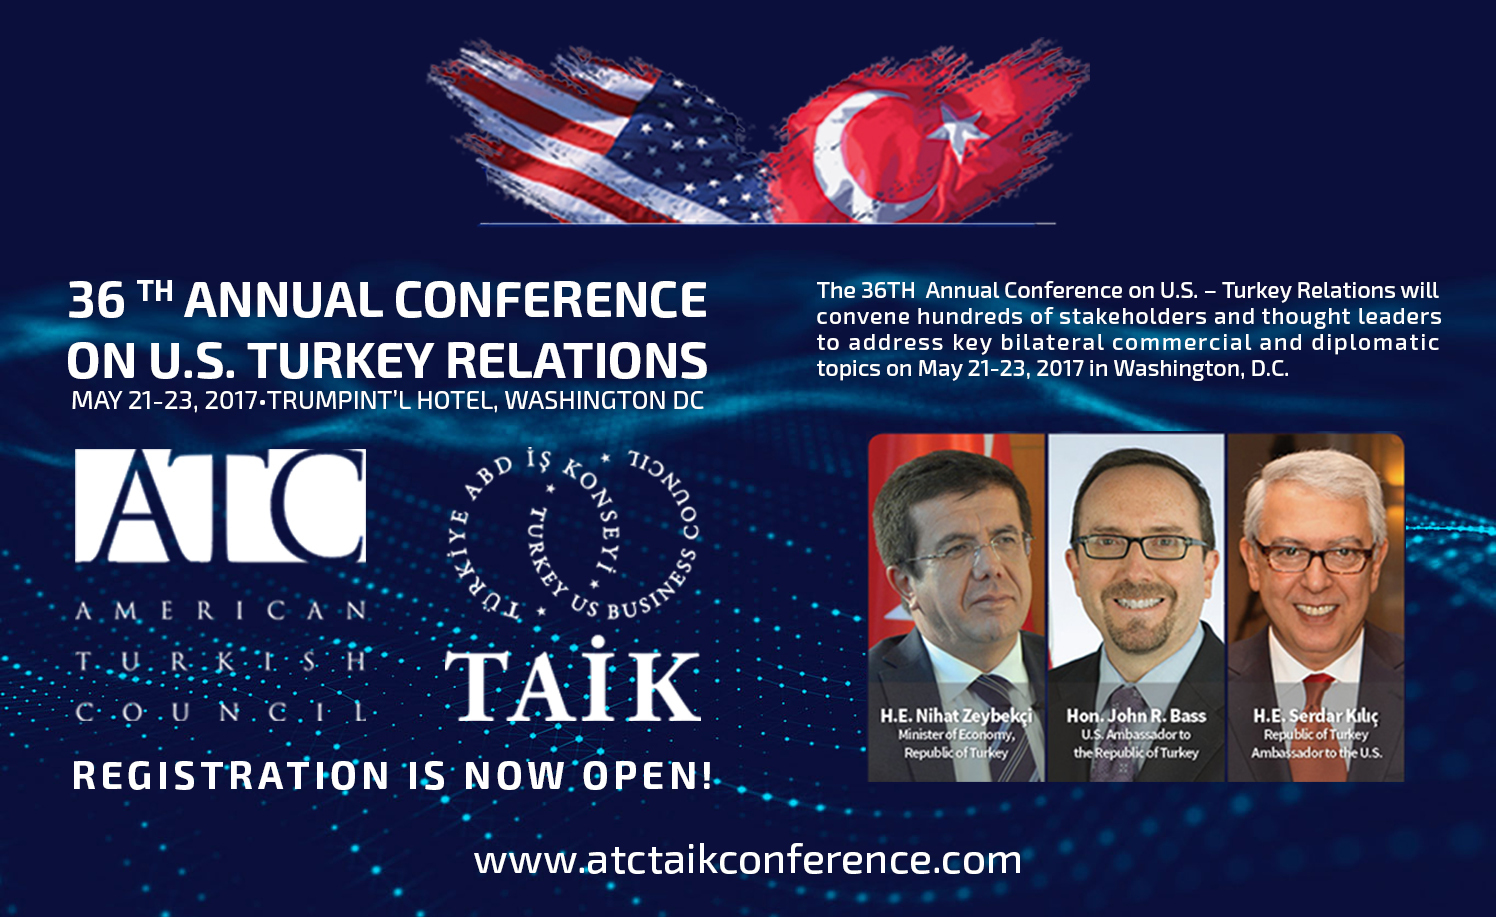 36 TH ANNUAL CONFERANCE ON U.S. TURKEY RELATIONS